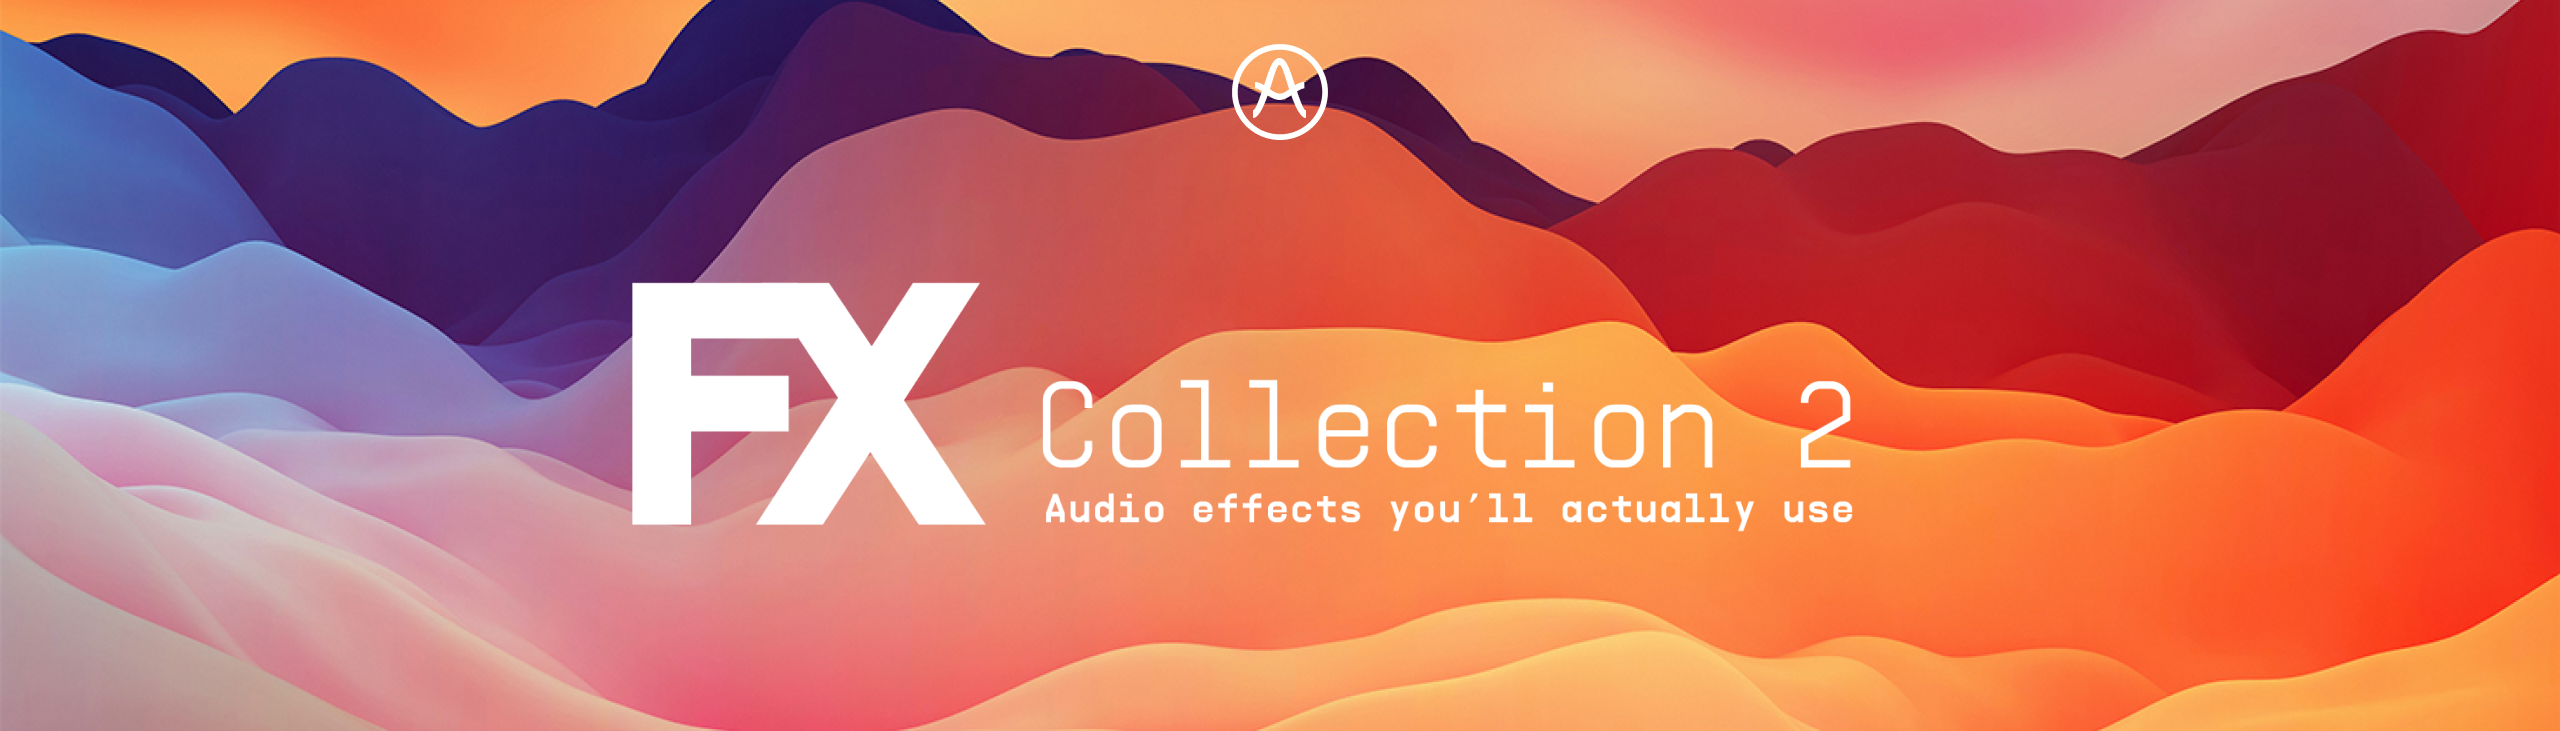 Arturia FX Collection 2 Rent-to-Own